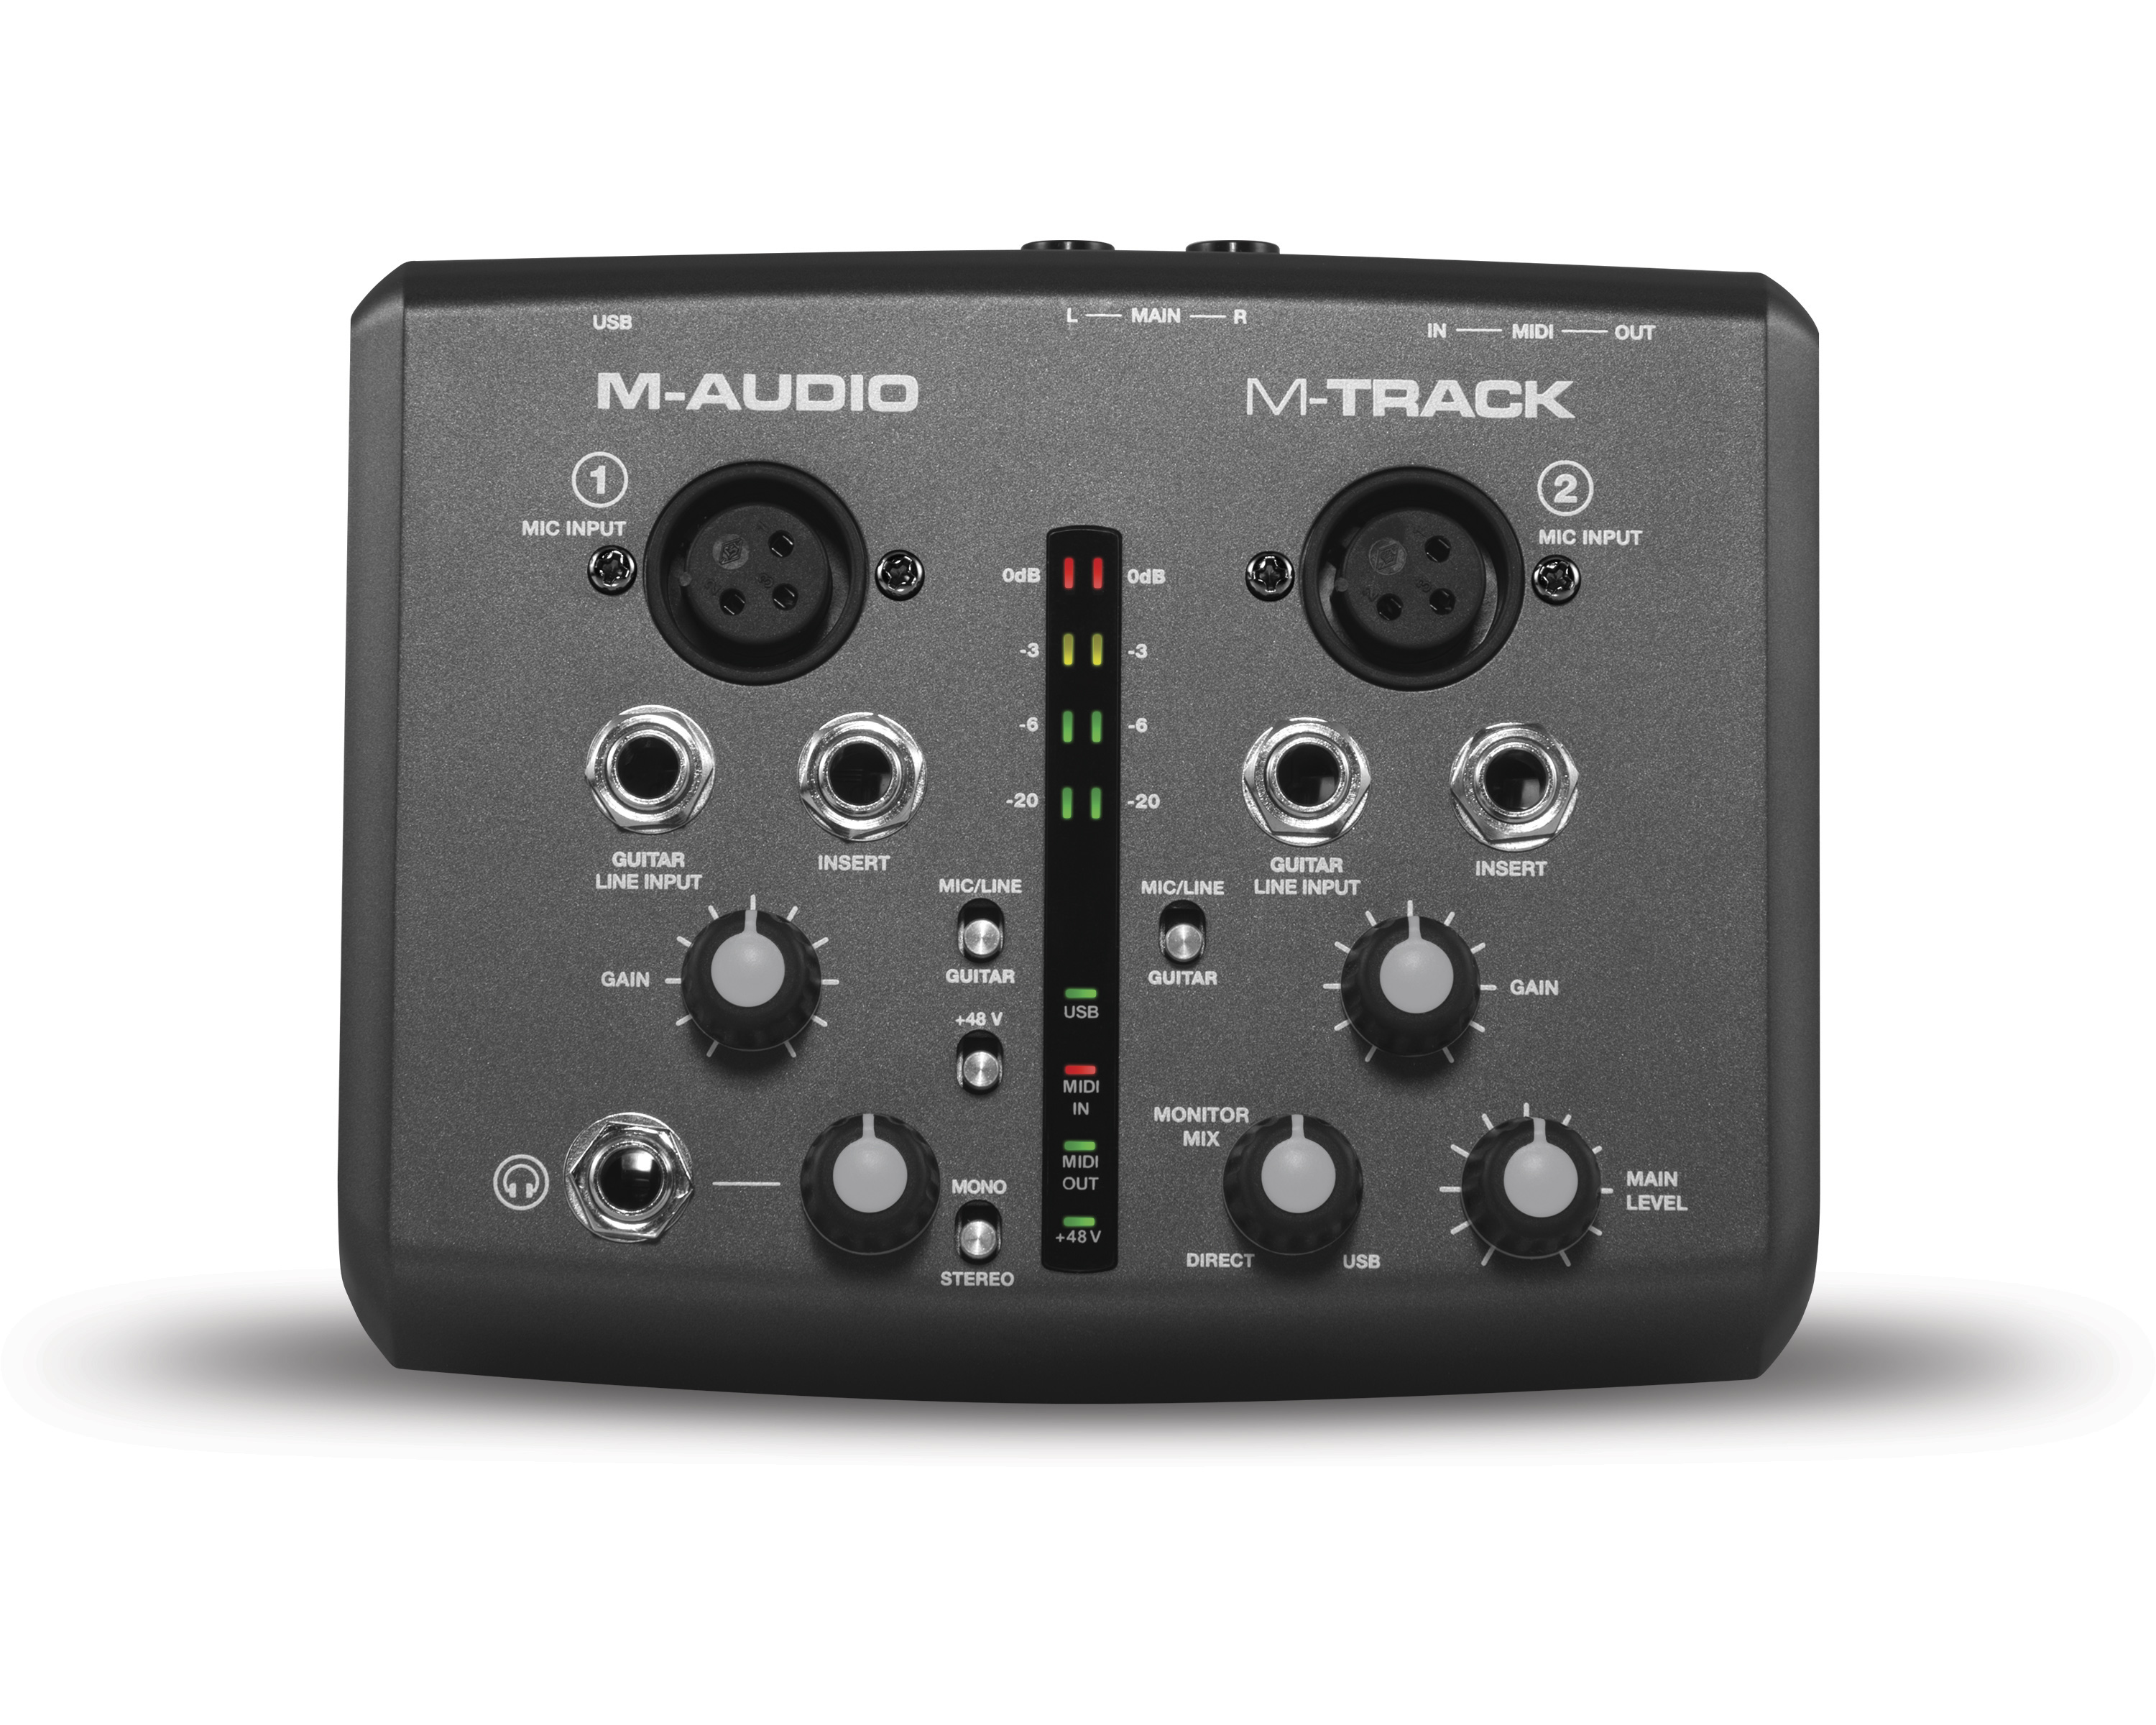 m audio m track two channel usb audio midi interface. Black Bedroom Furniture Sets. Home Design Ideas